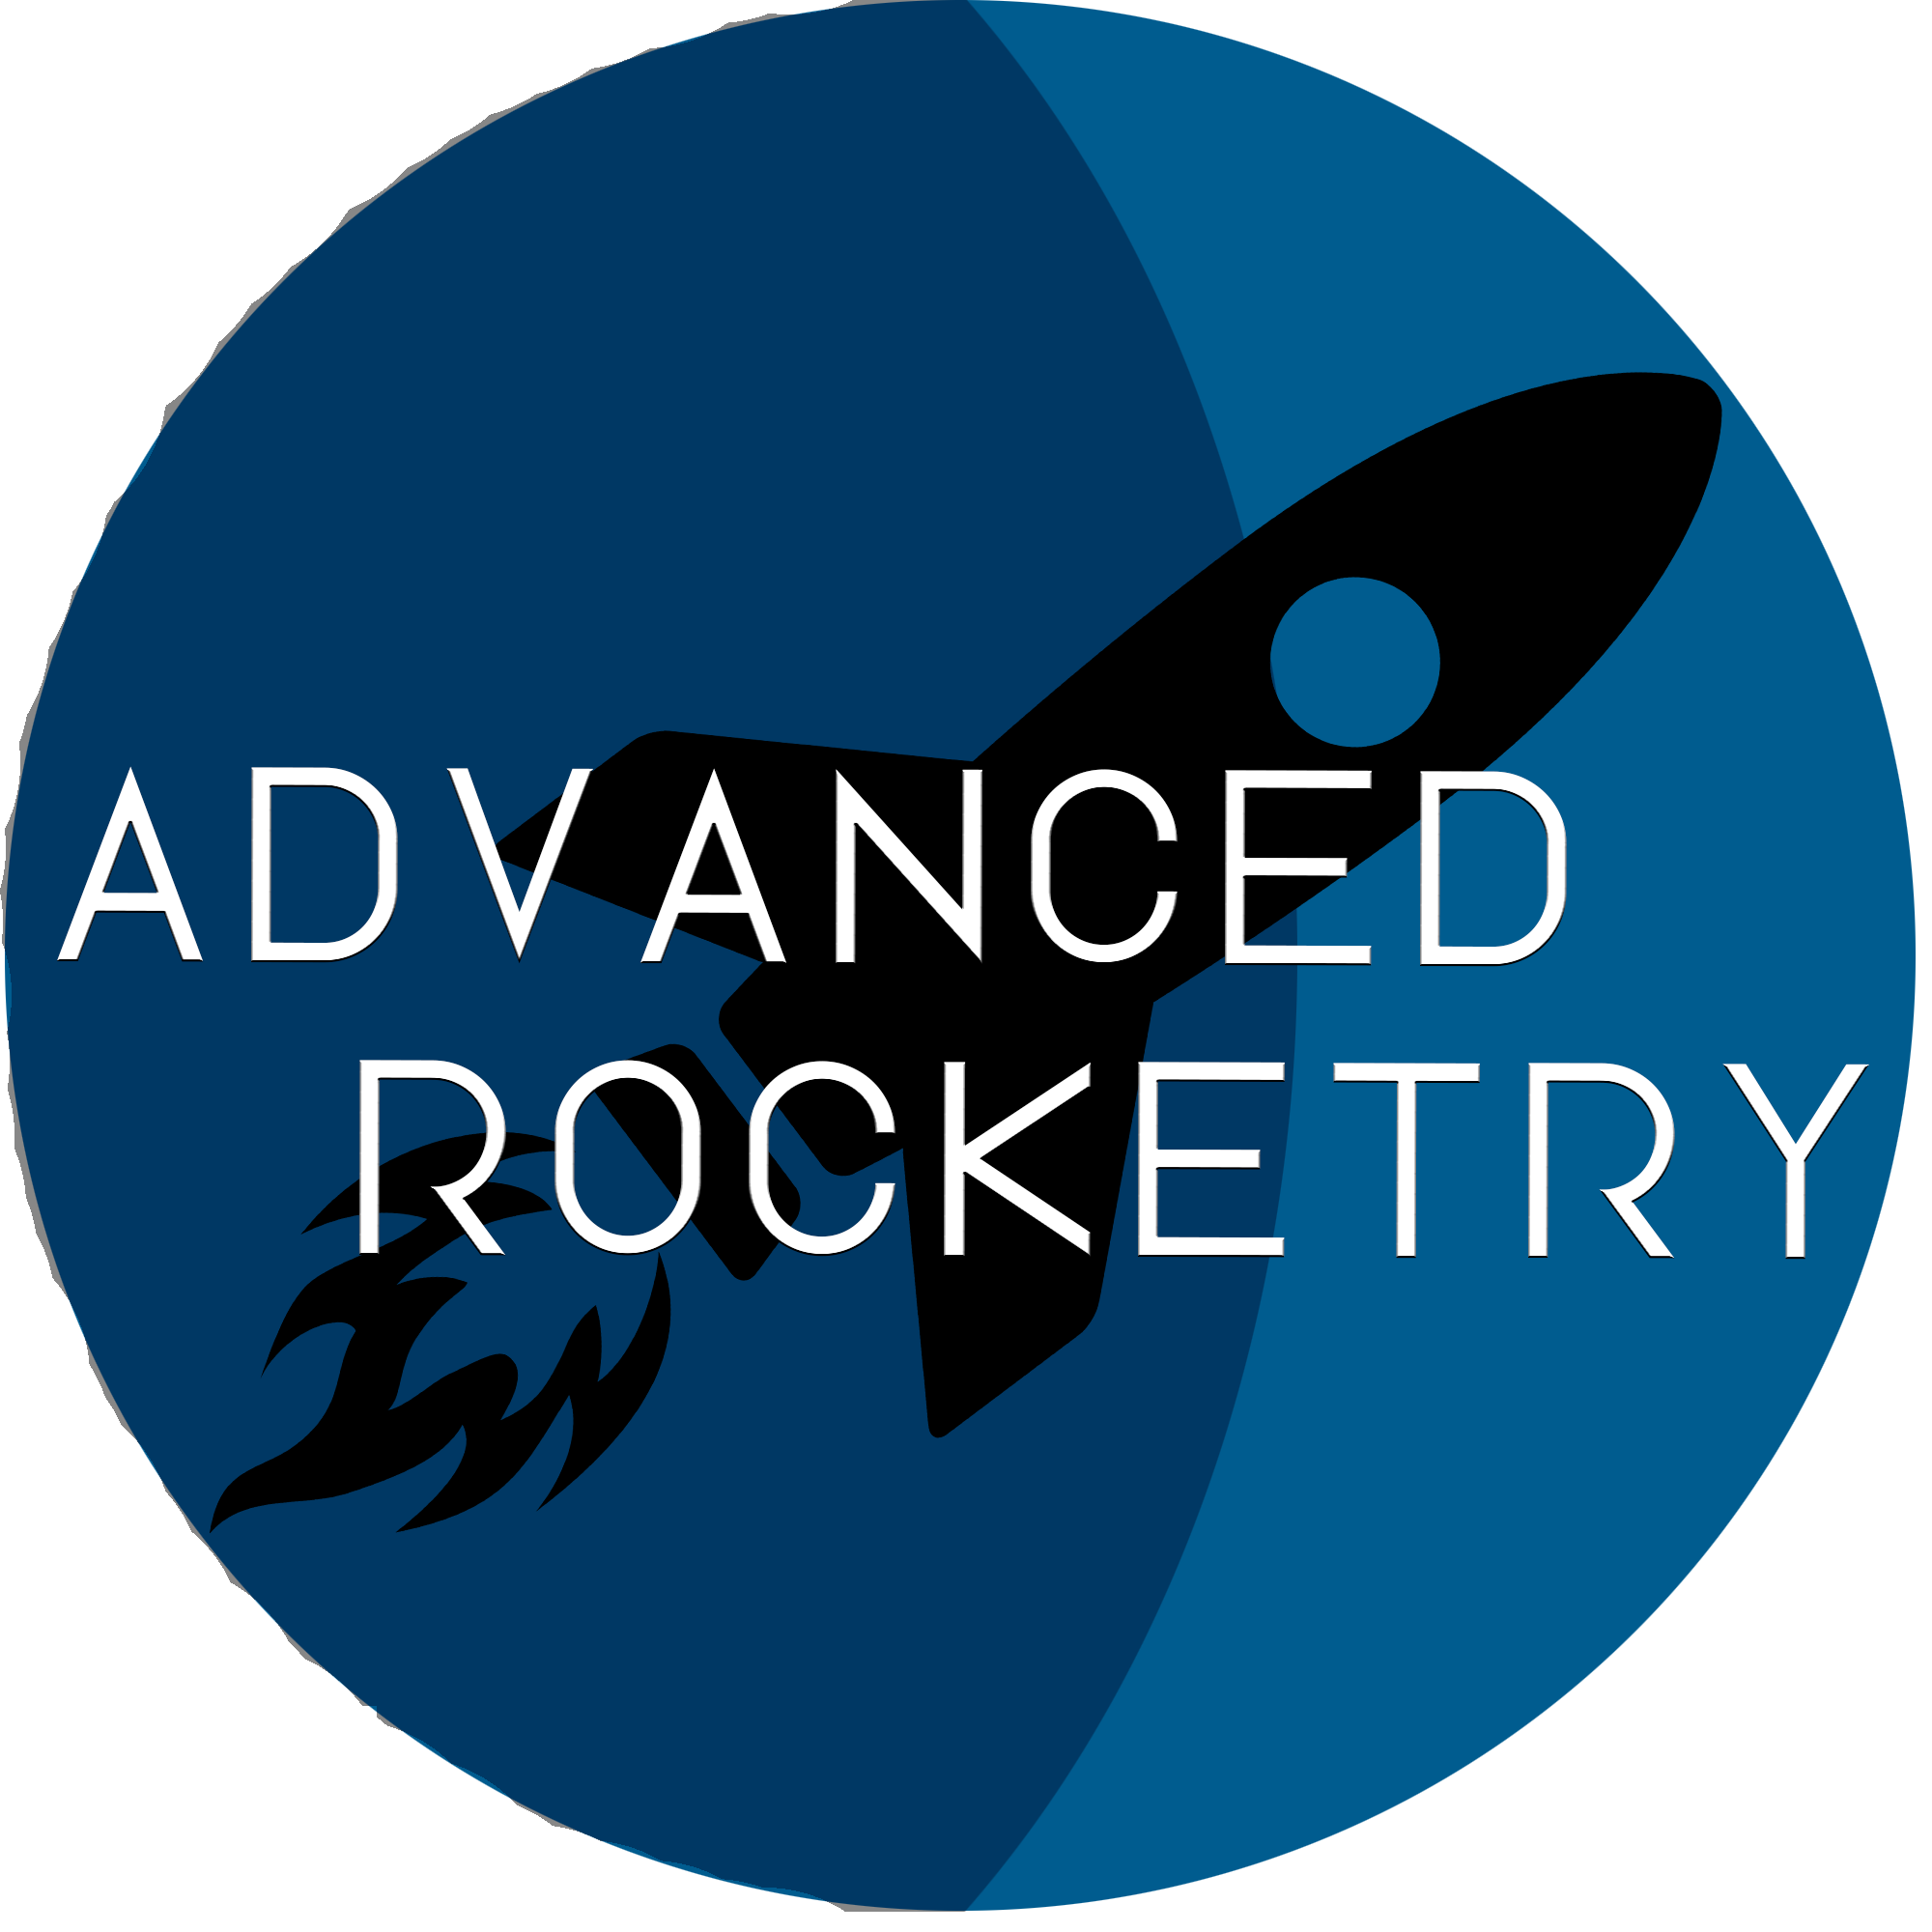 Planeten clipart asteroid. Overview advanced rocketry mods